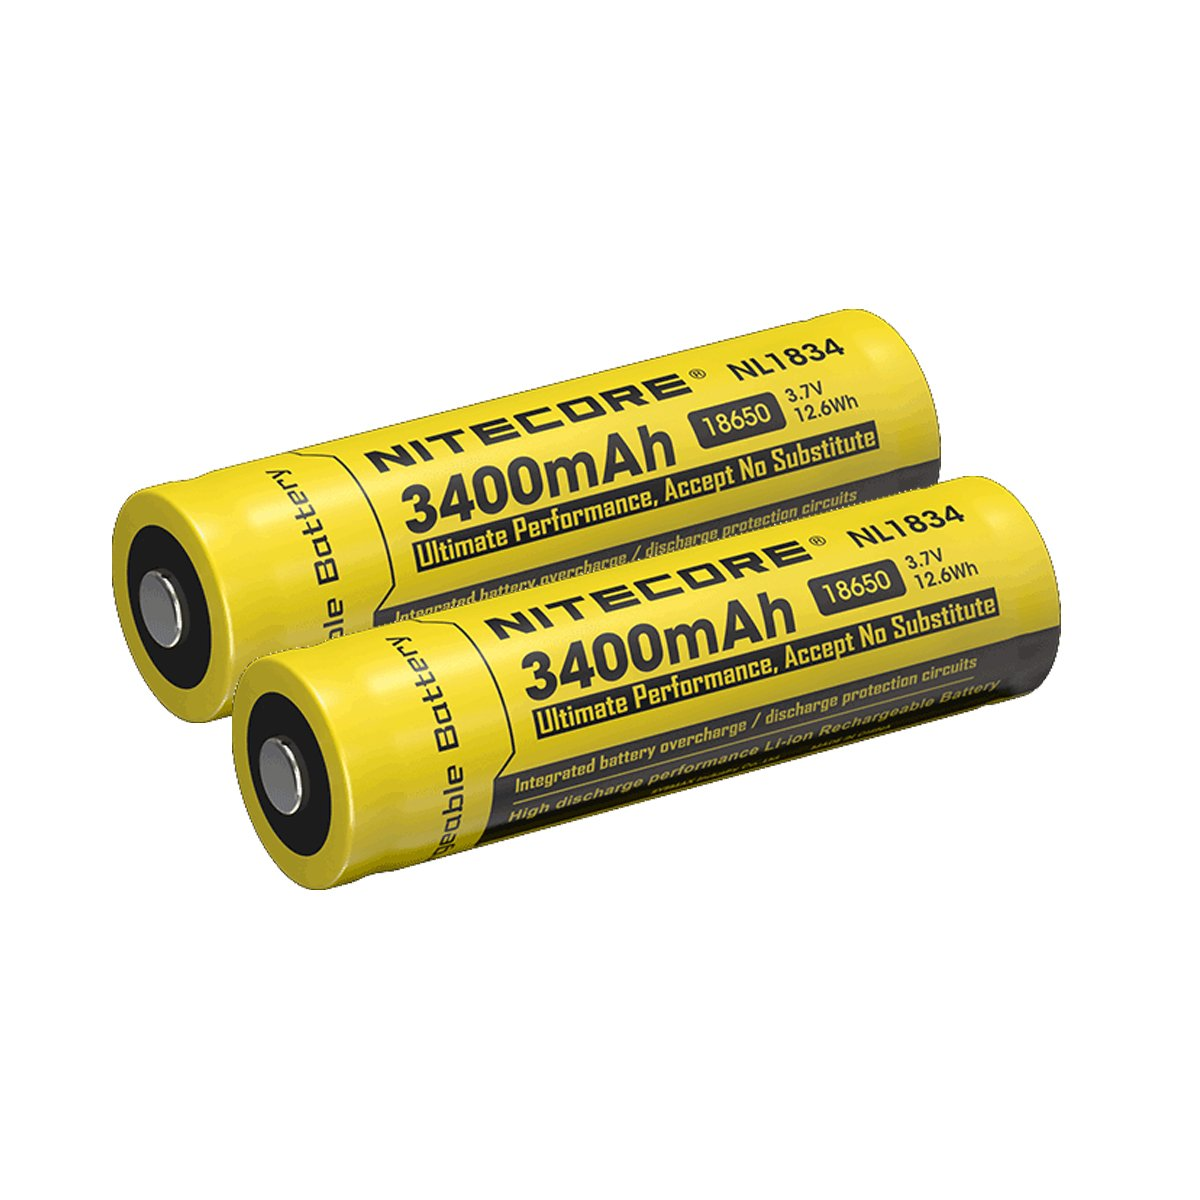 Two Nitecore Nl1834 3400mah Protected Rechargeable 18650 Battery Protection Circuit Batteries Designed For Led Flashlights Home Audio Theater